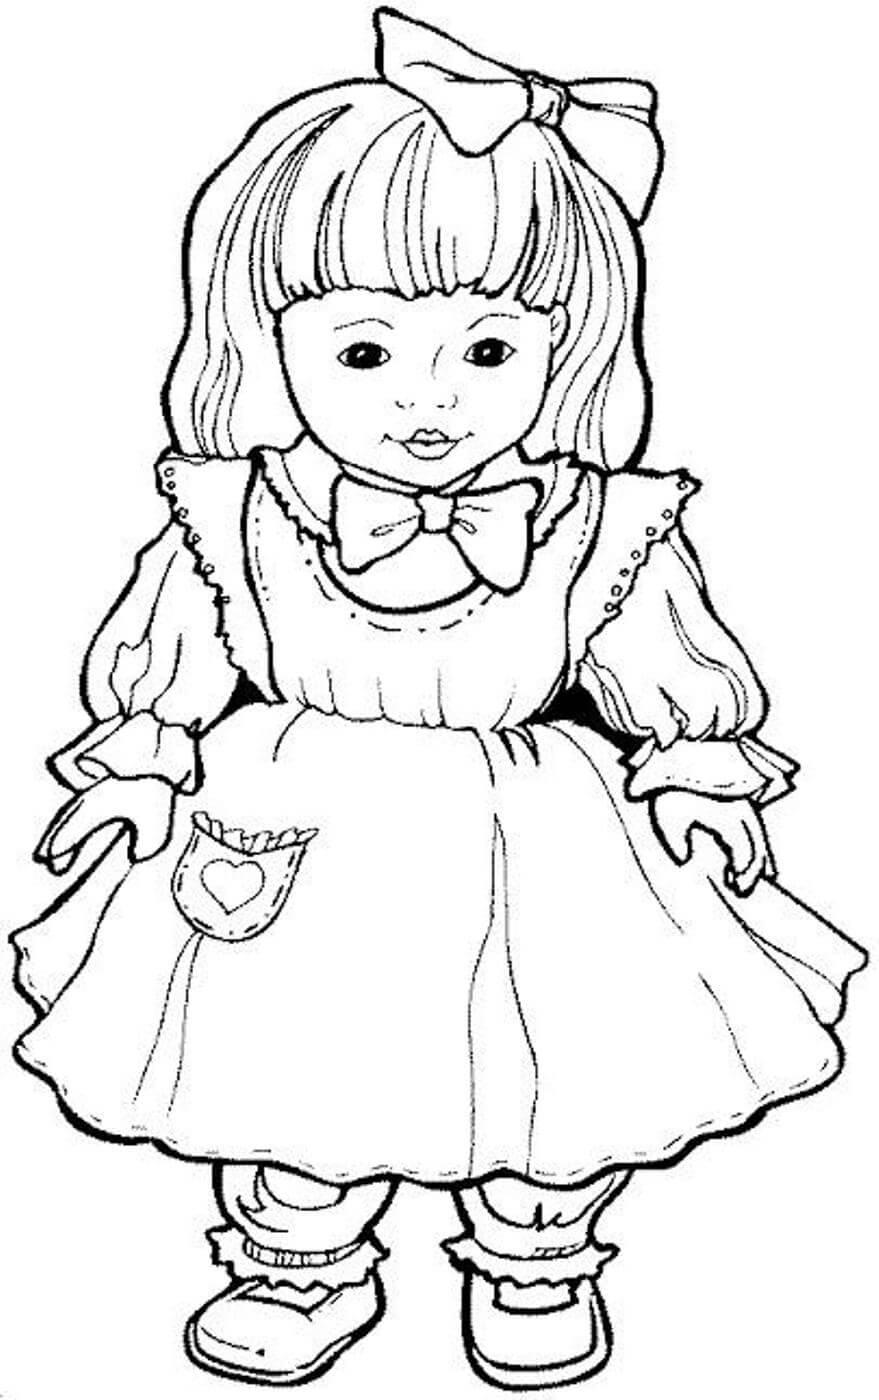 american girl doll coloring pages to print american girl doll coloring pages to download and print pages girl to coloring american doll print